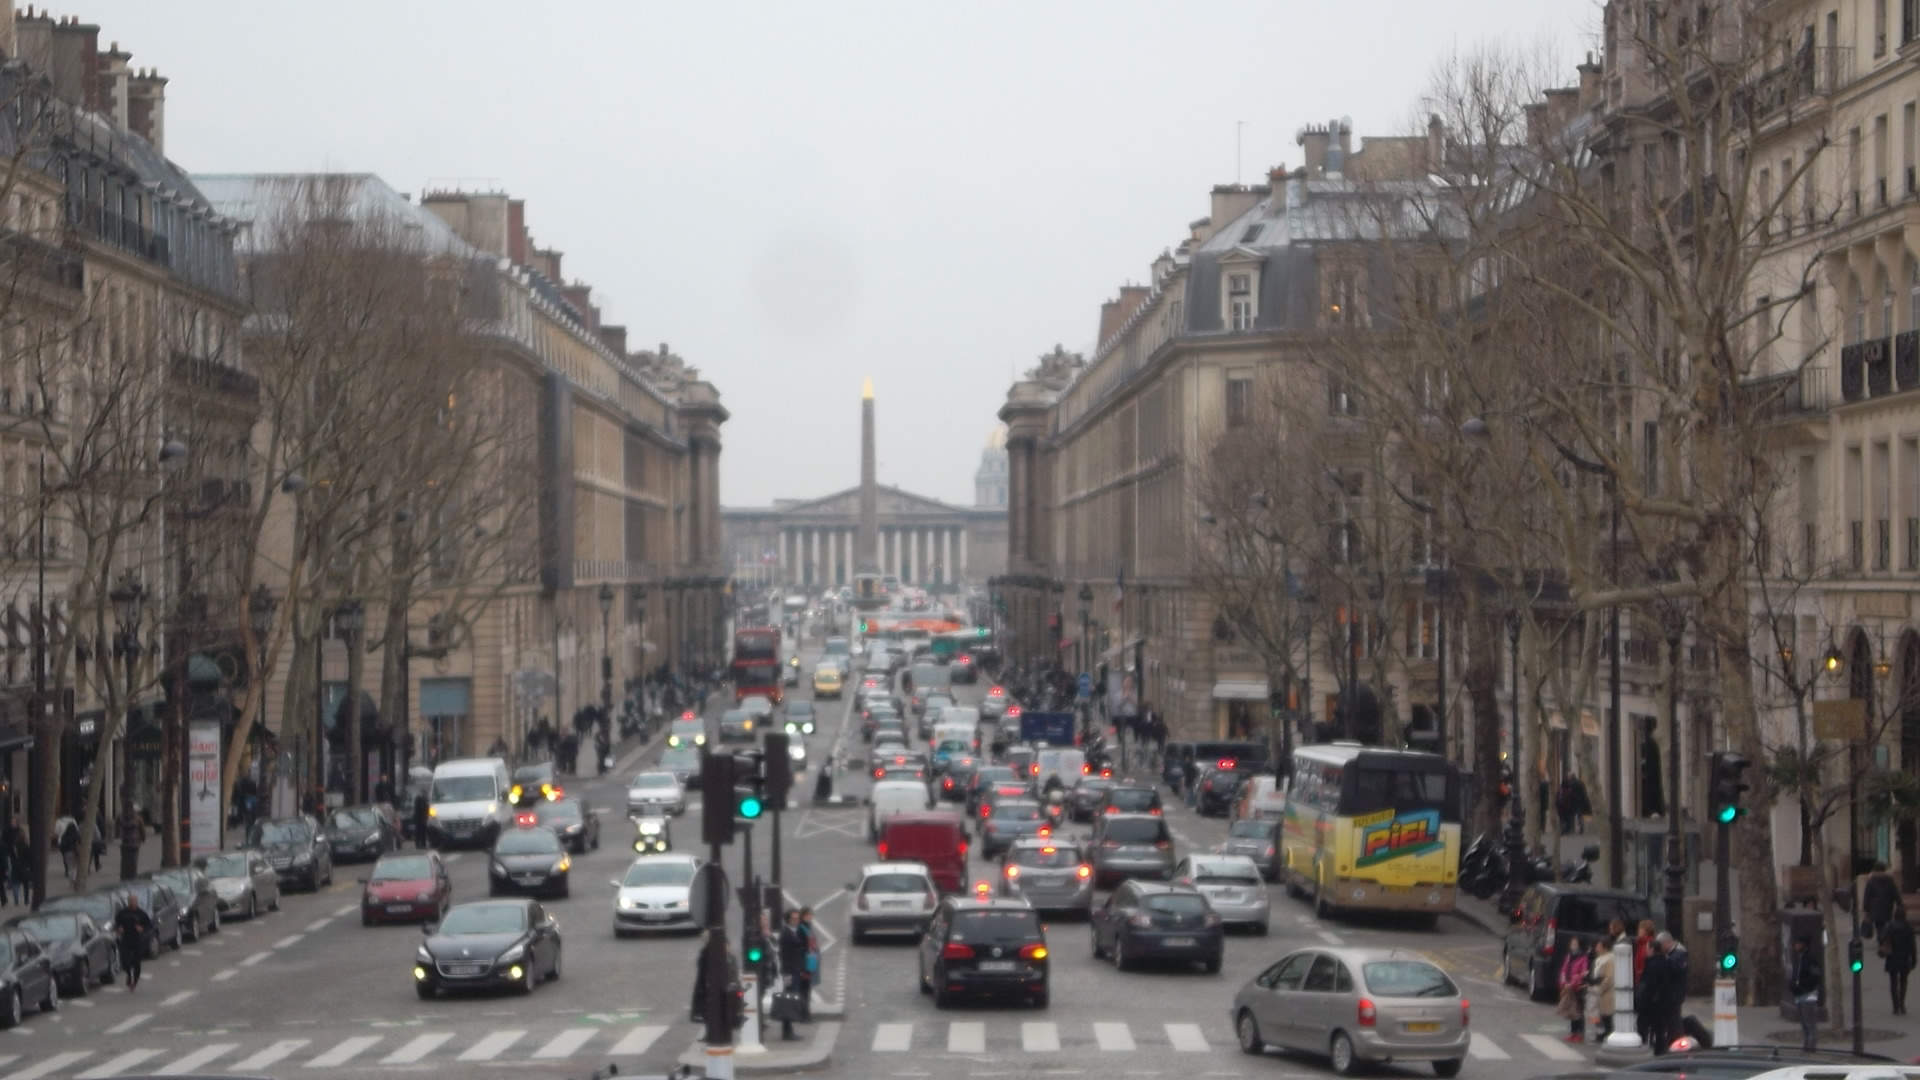 paris-madeleine-on-rue-royale-concorde-an-mar13